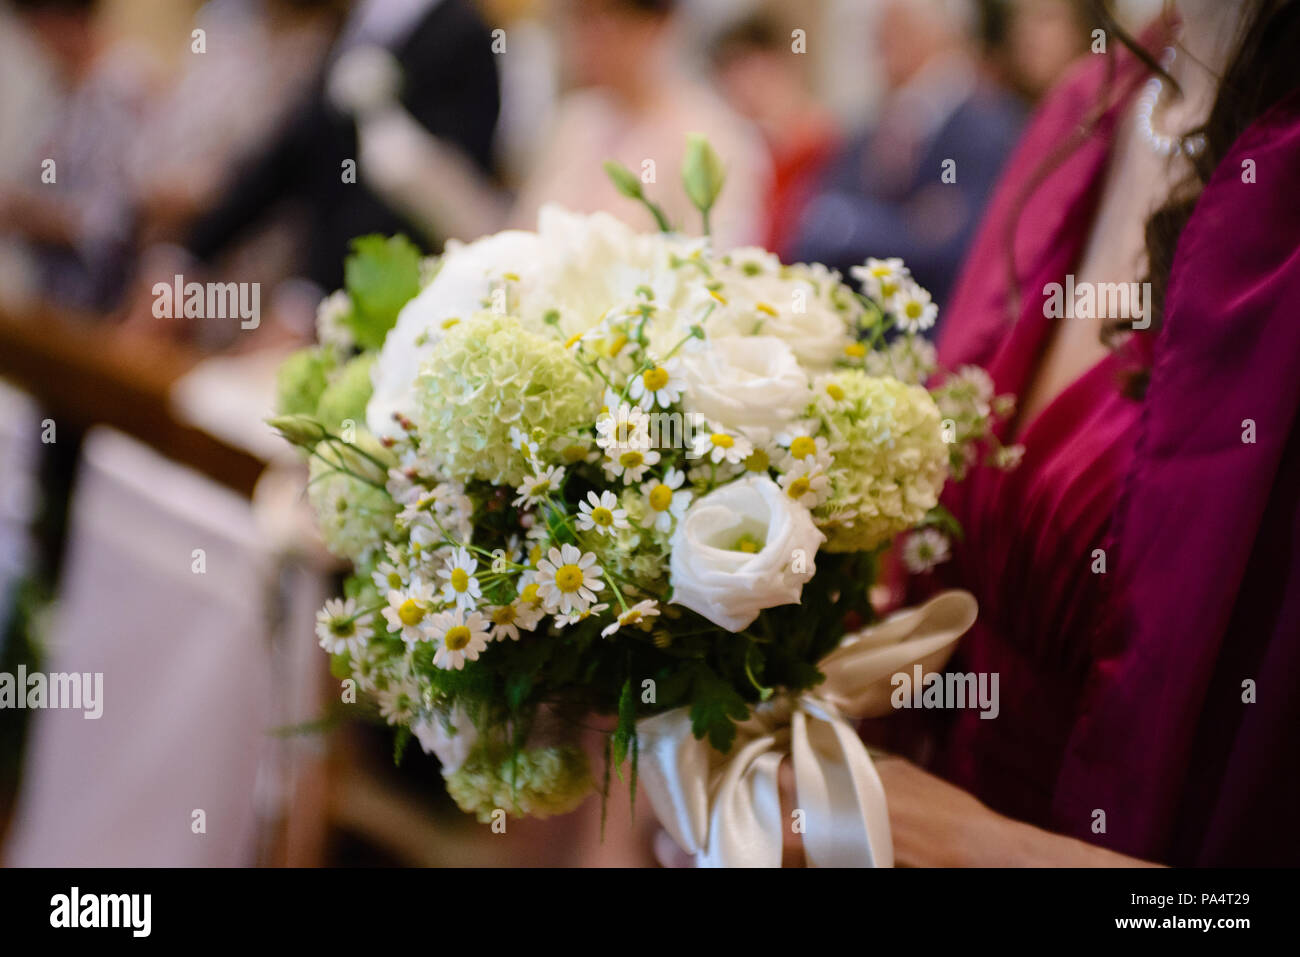 Floral Decorations In Church For Wedding Celebration Stock